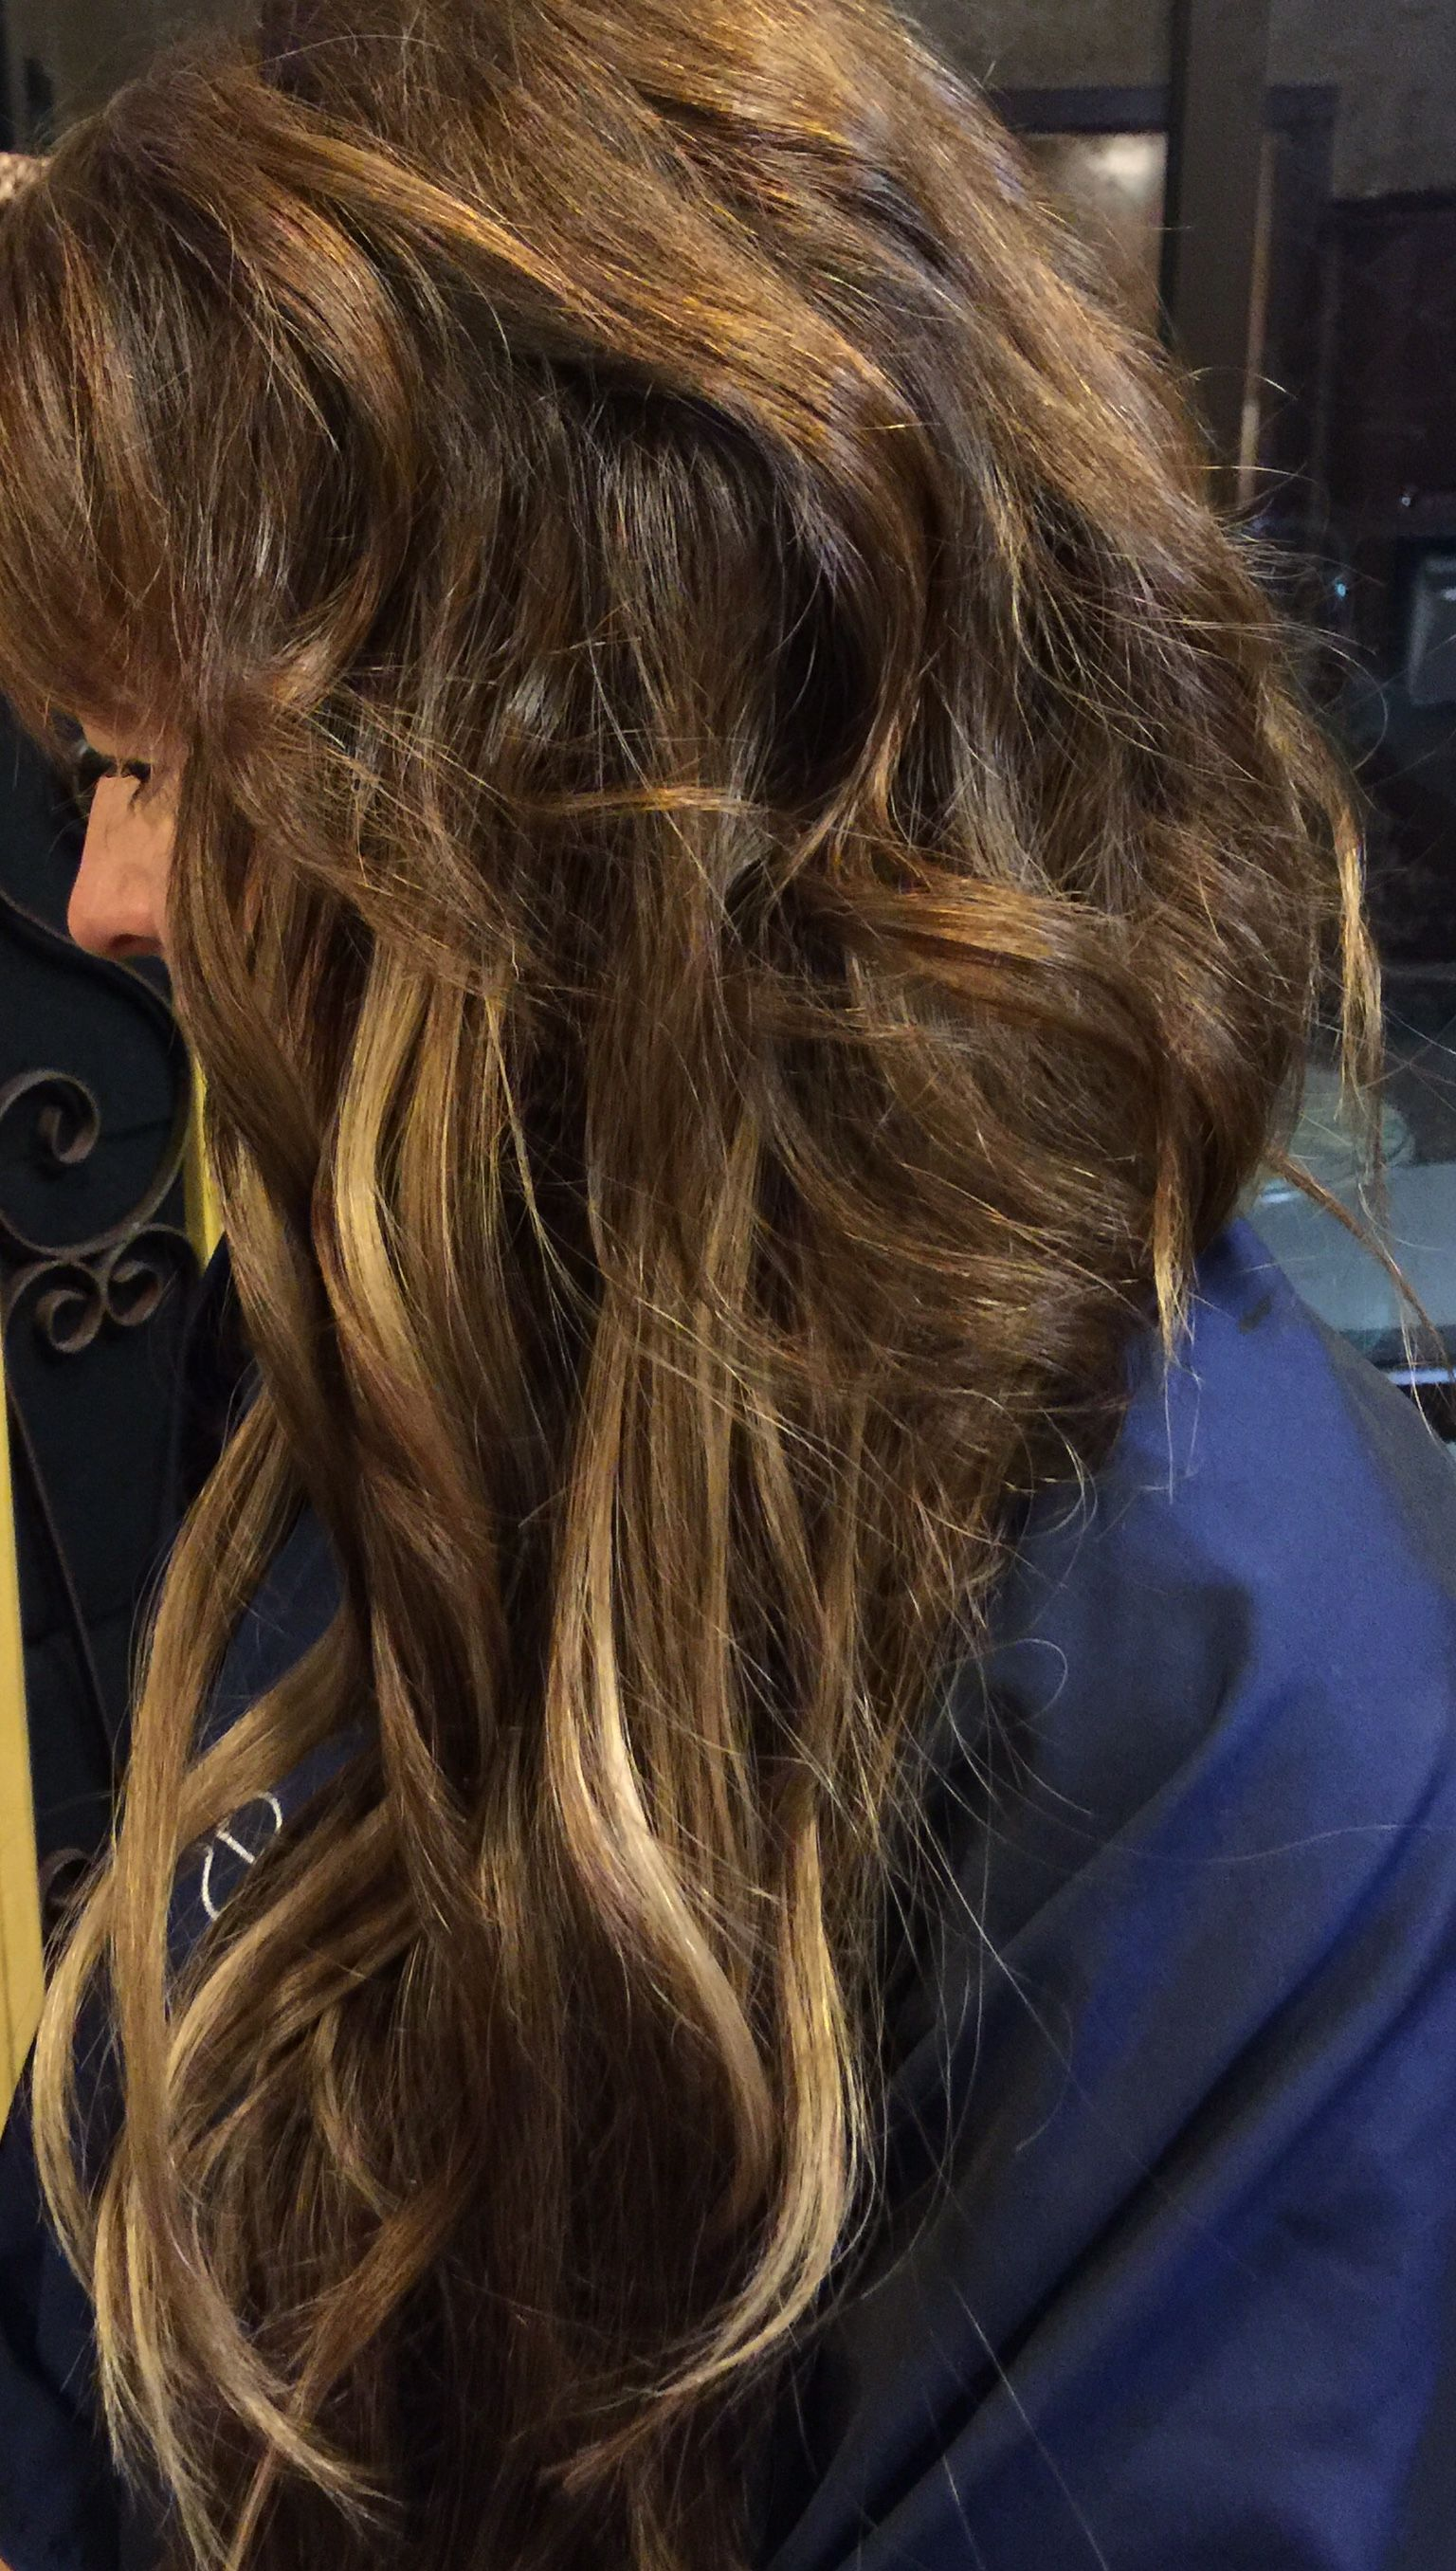 Custom color and 18in hair extensions by forever locks custom color and 18in hair extensions by forever locks pmusecretfo Choice Image